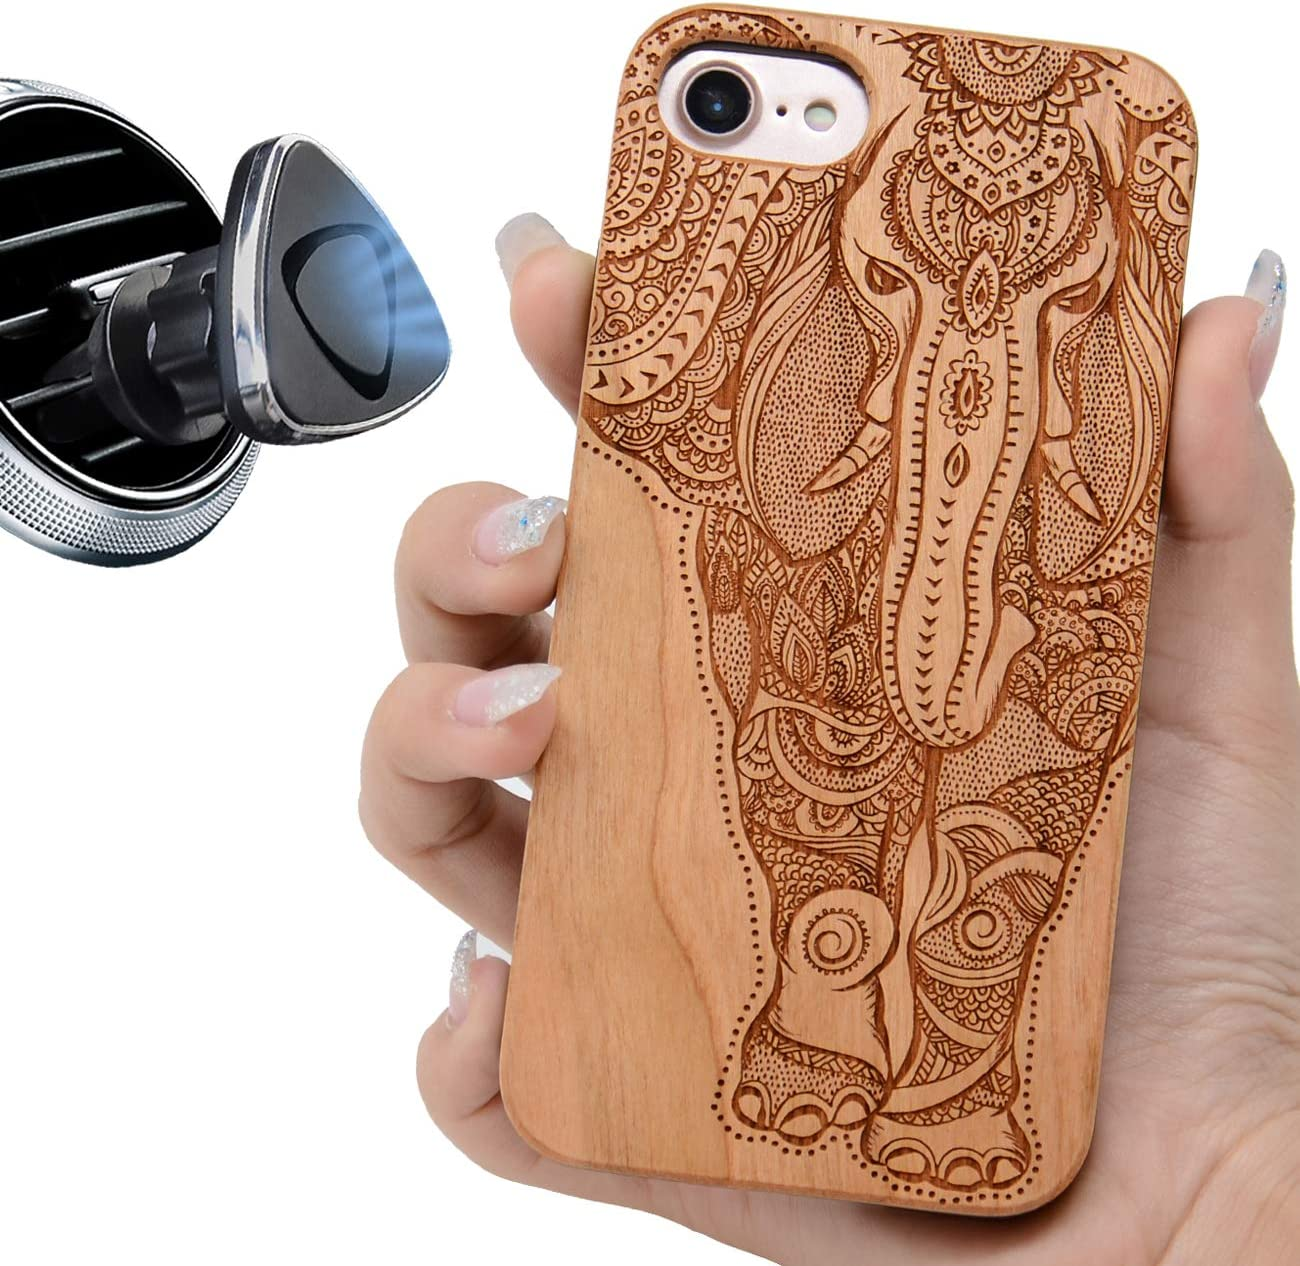 "iProductsUS Elephant Phone Case Compatible with iPhone SE (2020), iPhone 8, 7, 6/6S (4.7"") and Magnetic Mount, Wood Phone Cases Engraved Unique Elephant,Built-in Metal Plate,TPU Shockproof Covers"